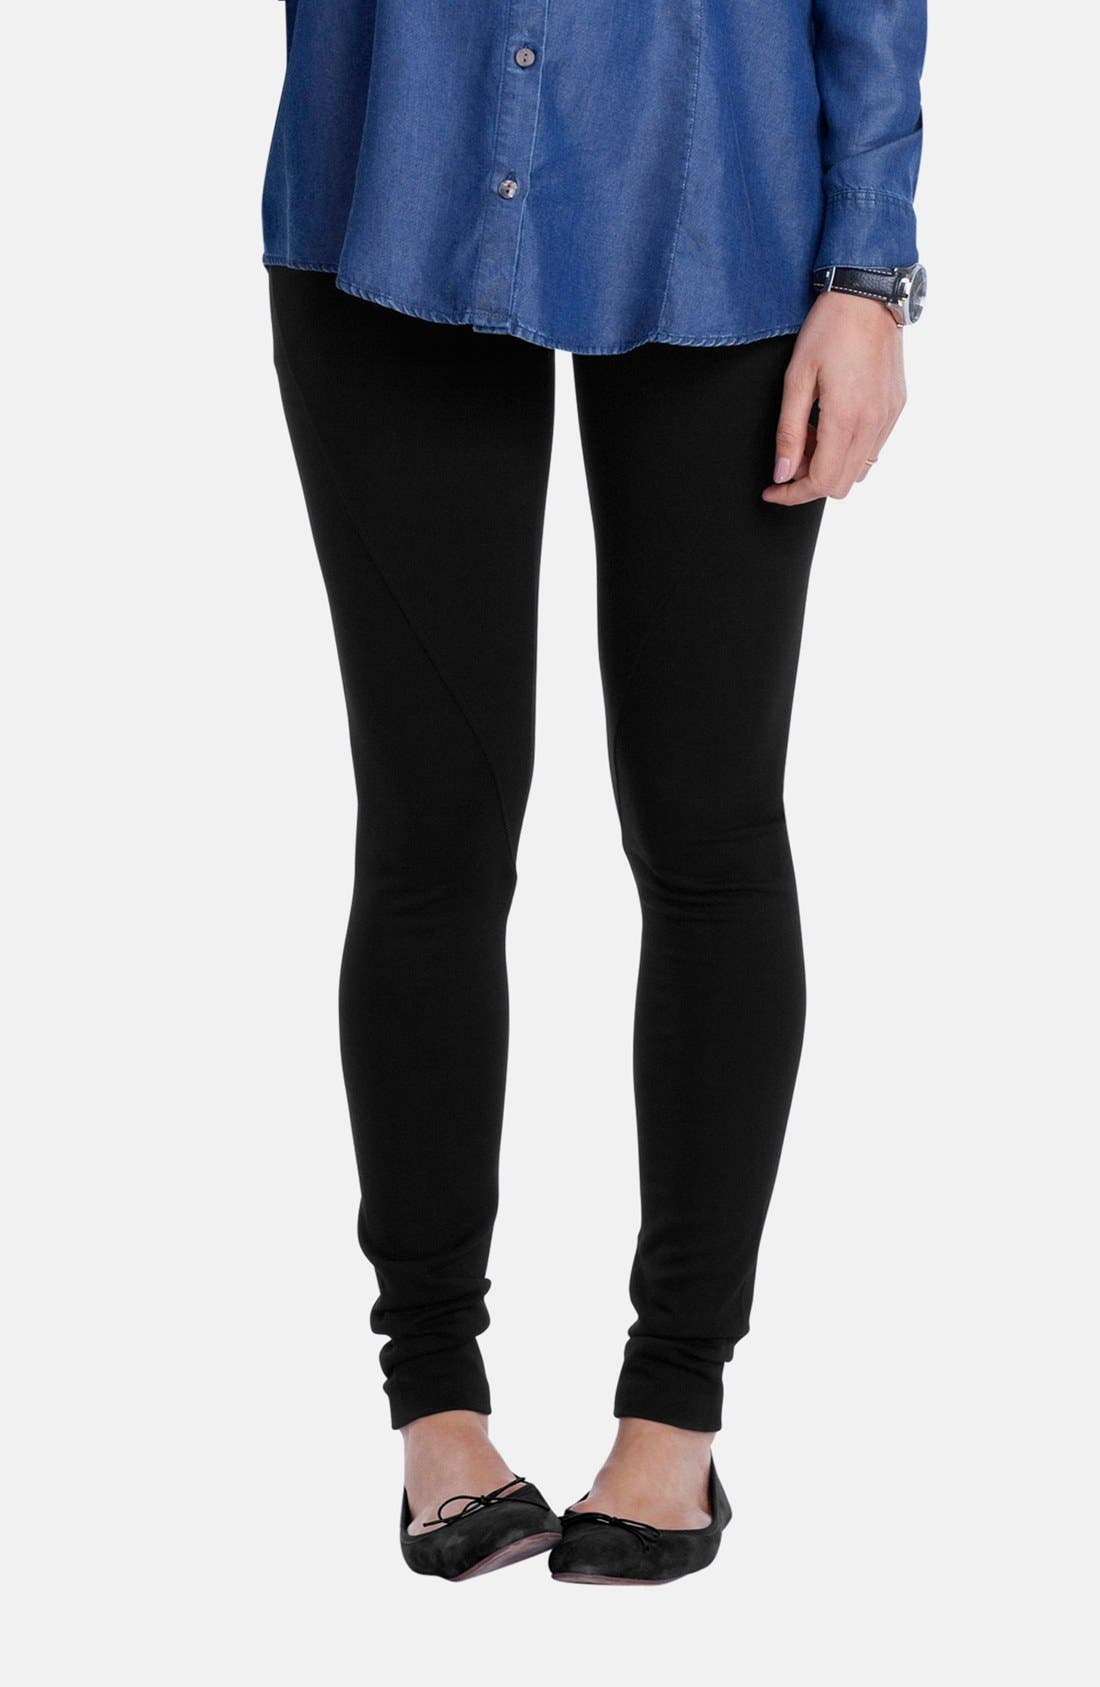 'Essential' Maternity Leggings,                         Main,                         color, Caviar Black